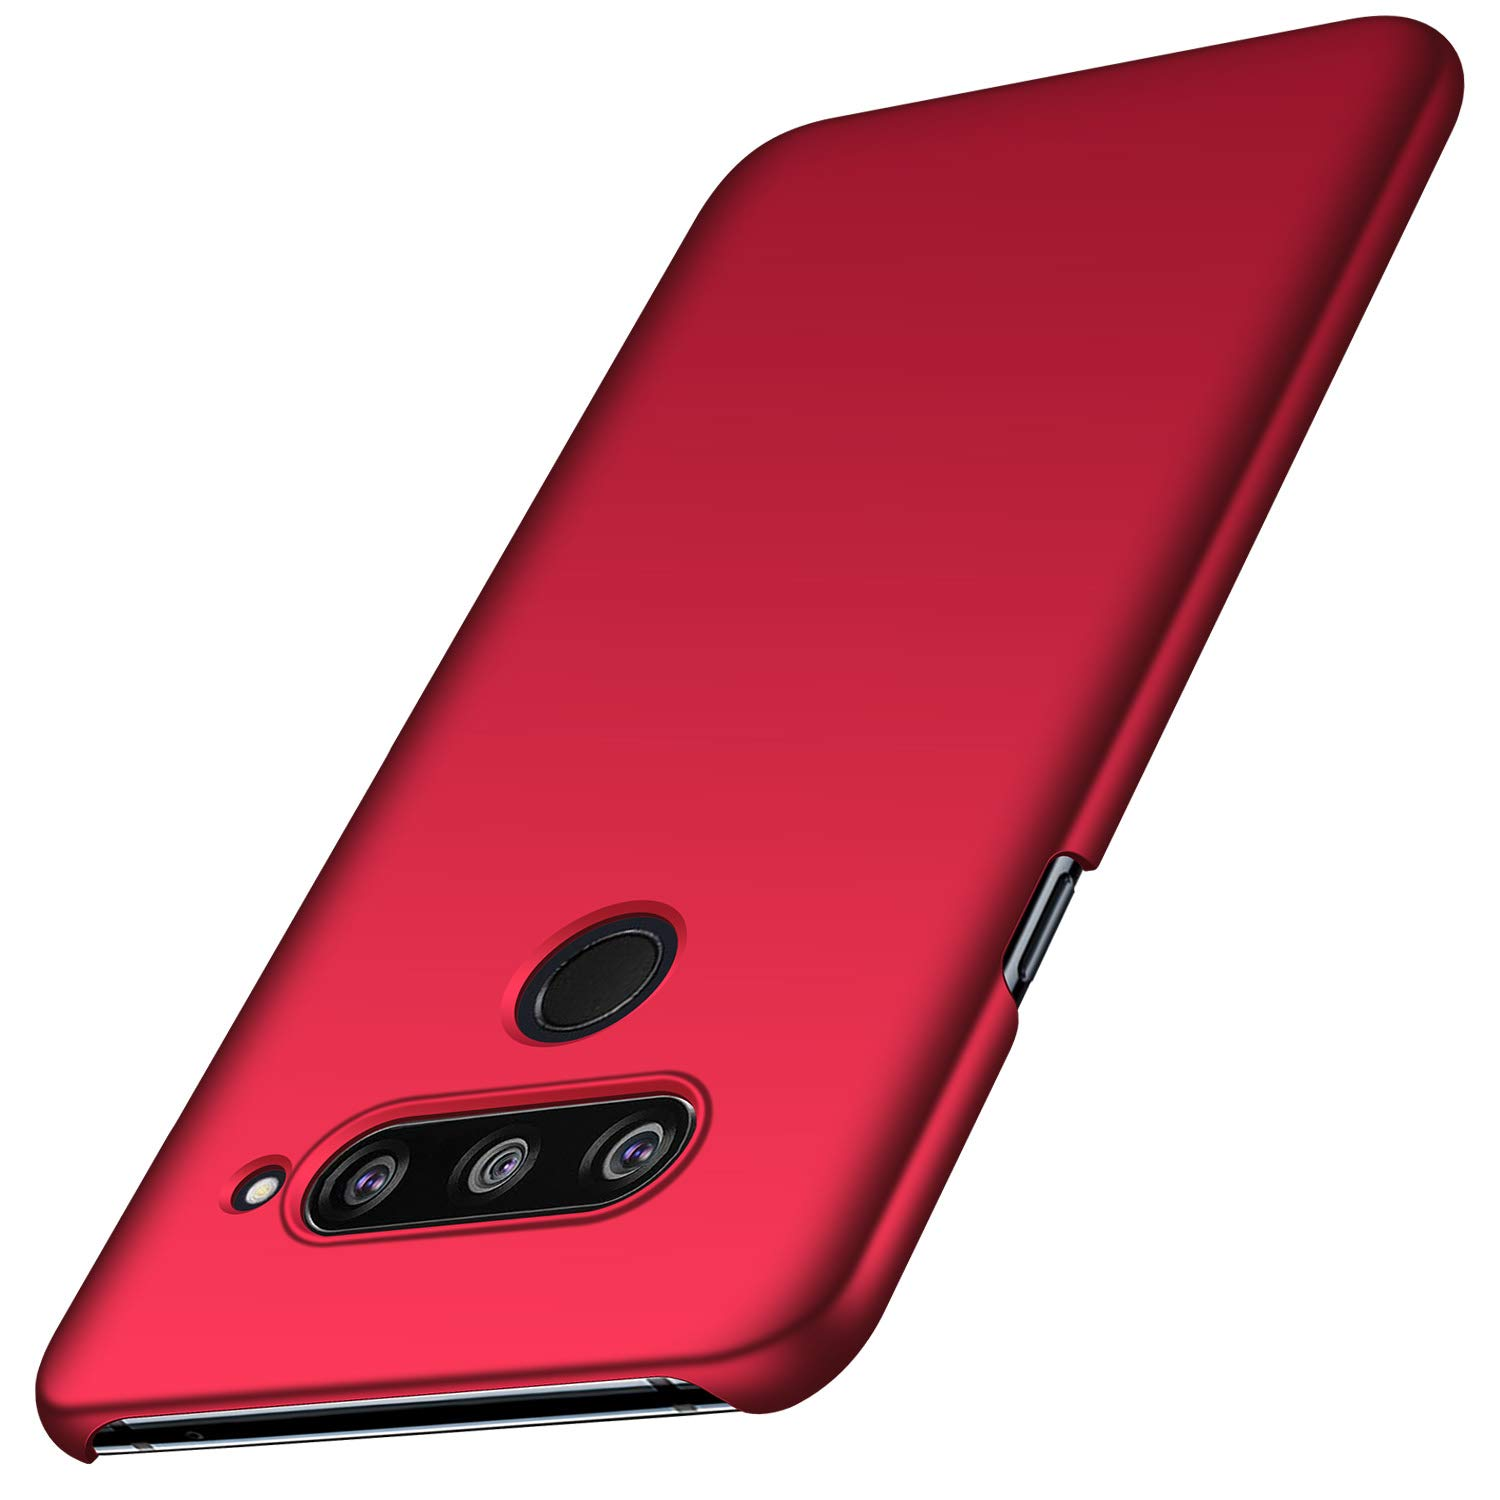 Arkour LG V40 ThinQ Case, LG V40 Case, Minimalist Ultra Thin Slim Fit Smooth Matte Surface Hard PC Cover for LG V40 ThinQ (Smooth Red)